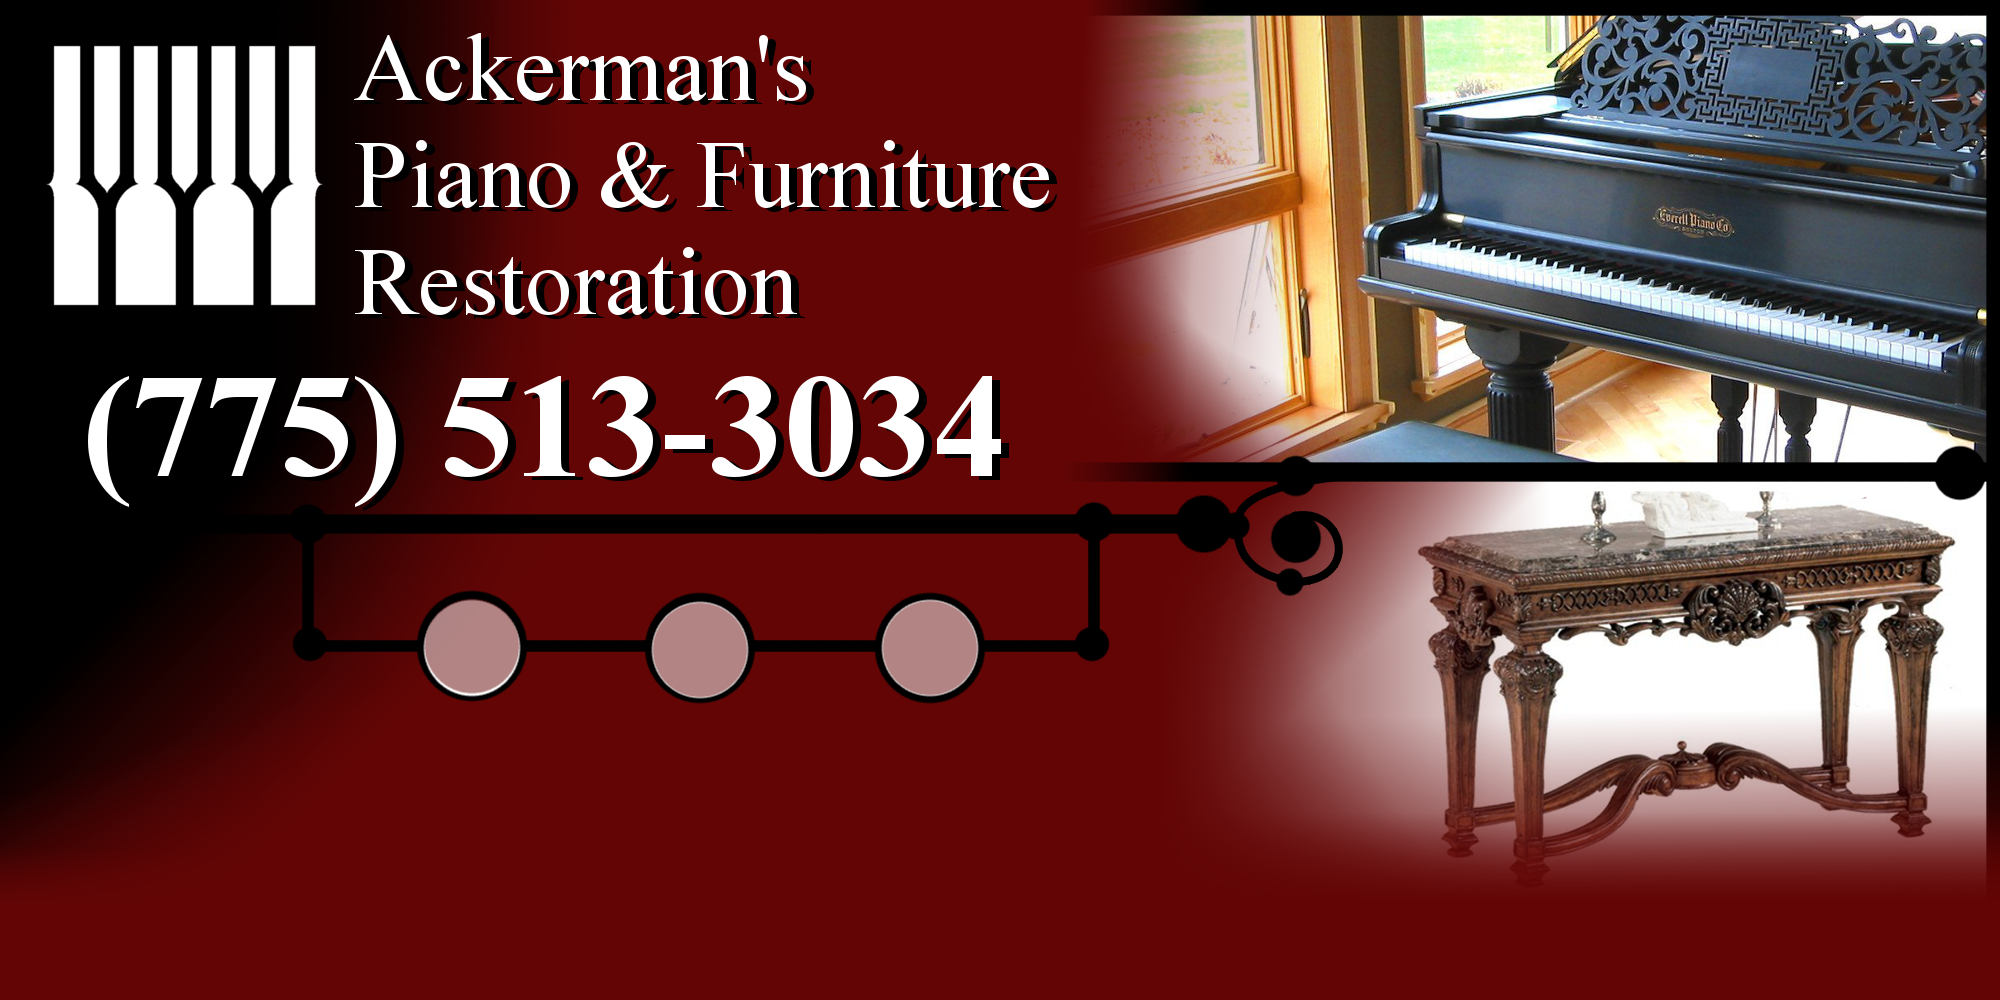 Ackerman's Piano & Furniture Restoration Home Page - 702-556-9940